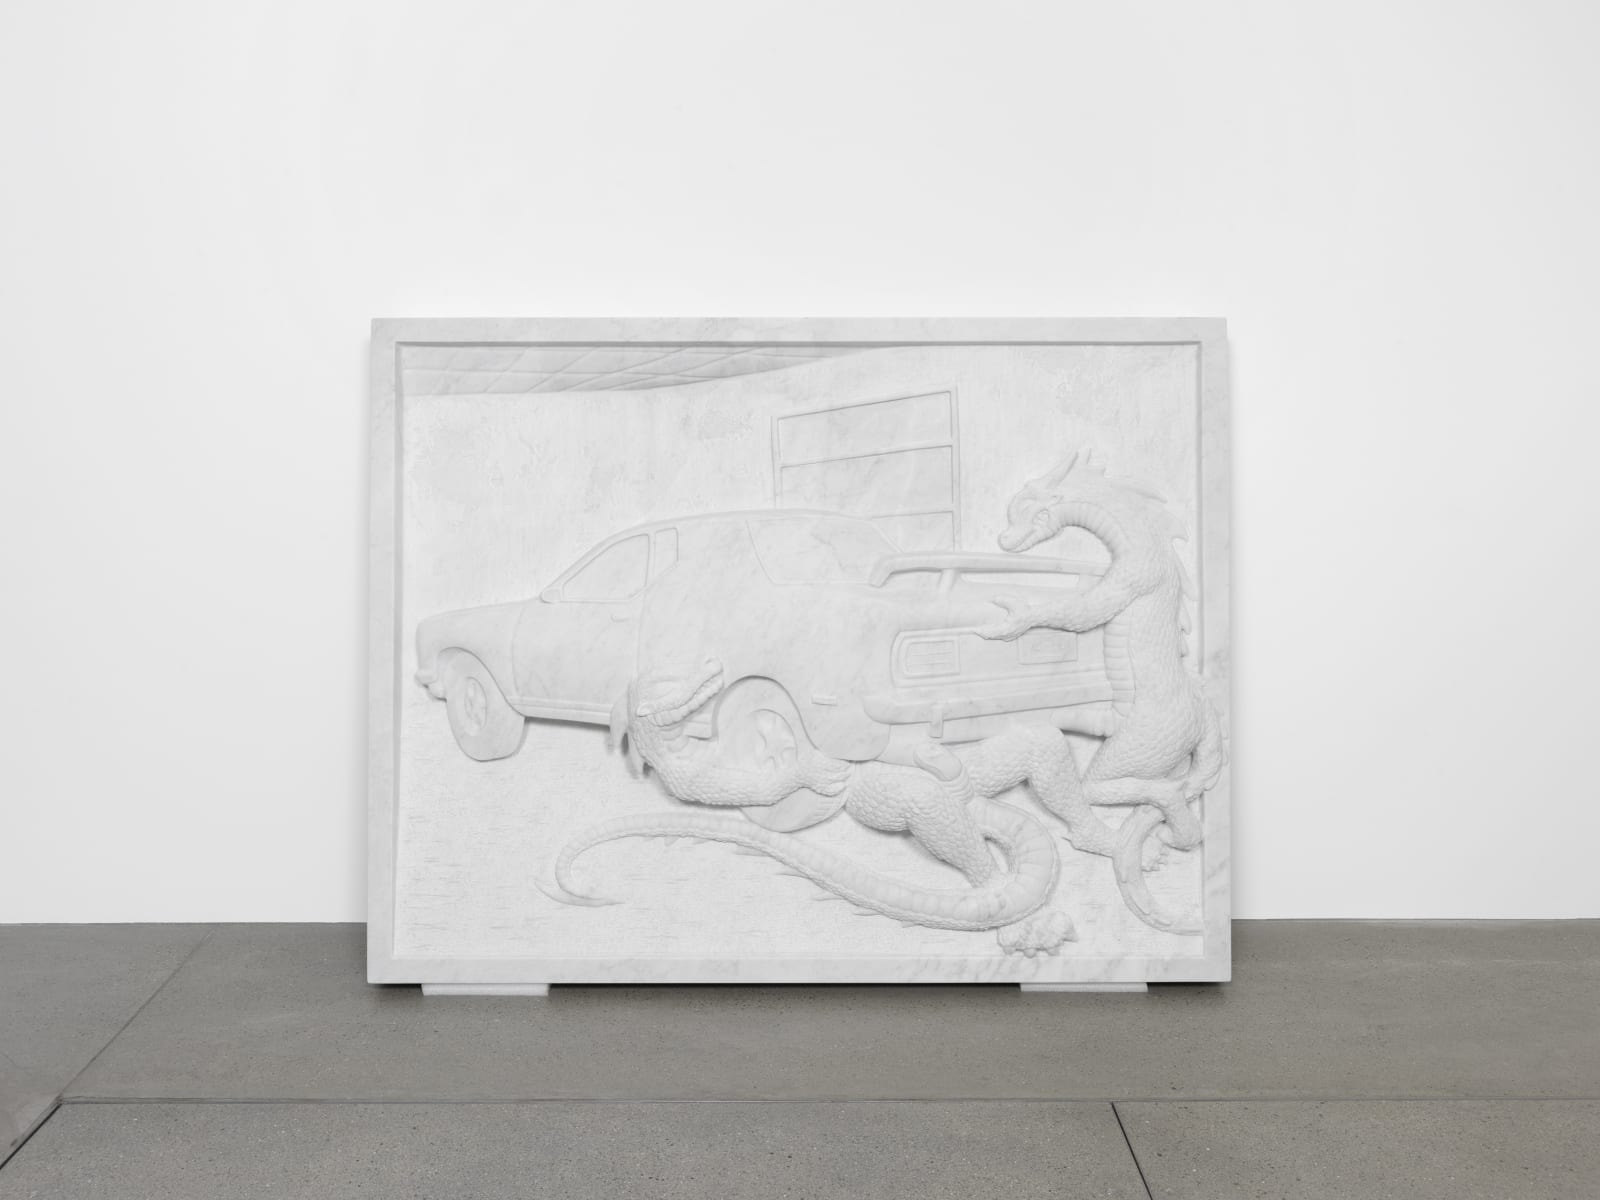 Jon Rafman, Dragons Fucking Car II (Relief), 2016